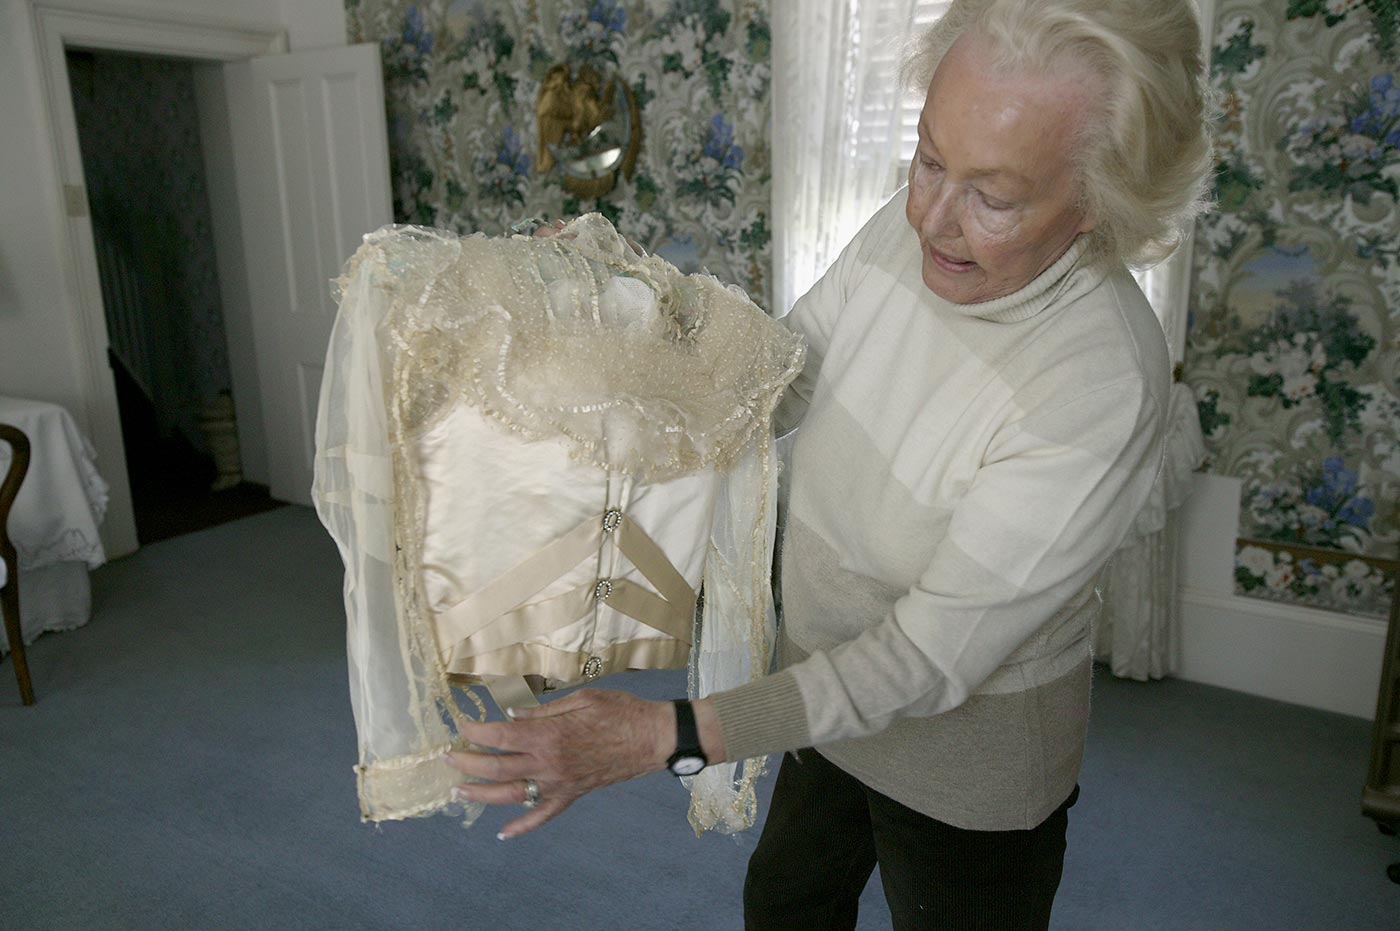 A woman stands in room holding and inspecting the back of a wedding dress bodice.